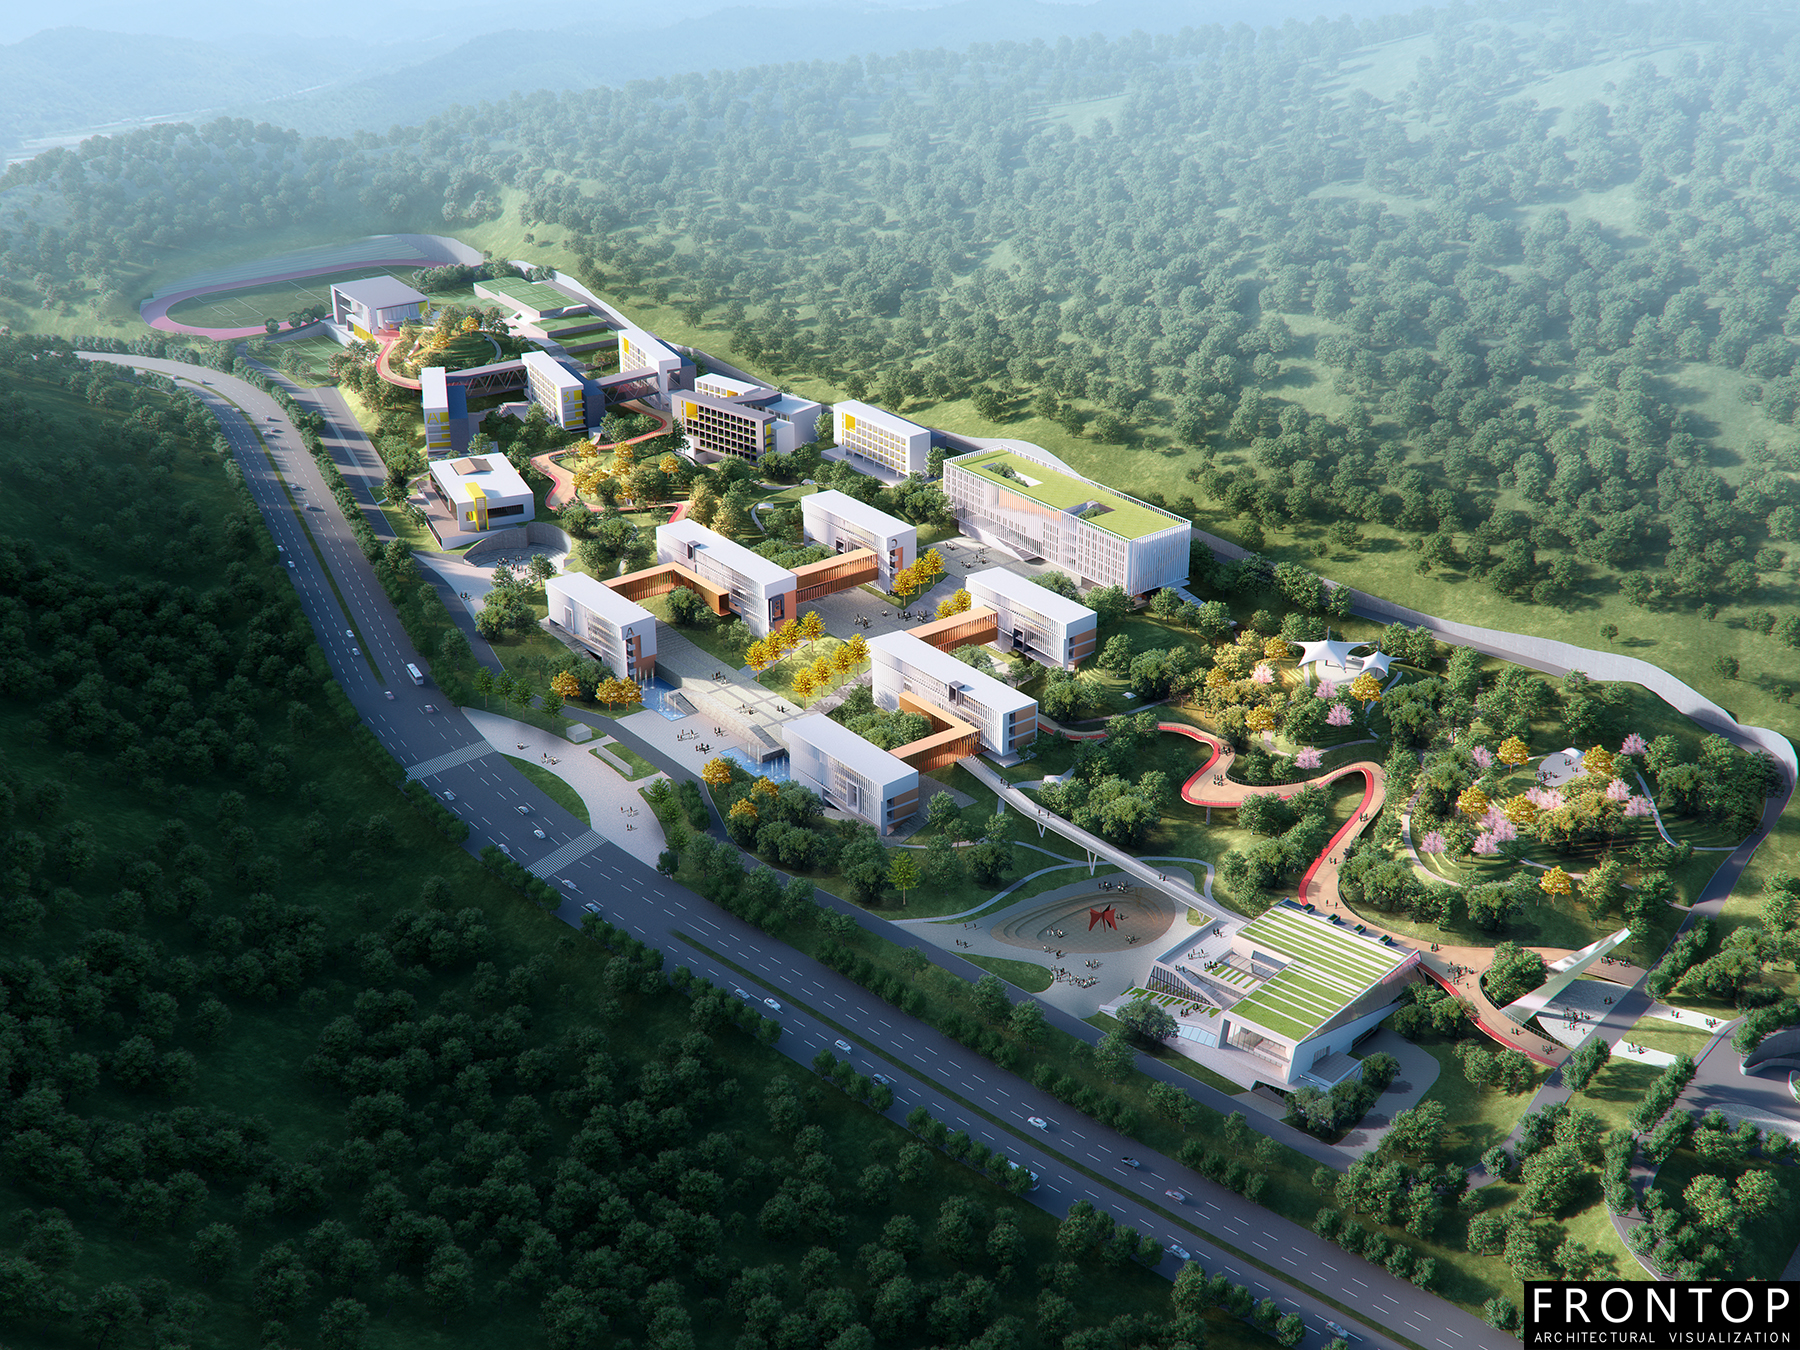 New Arrival China Sketch Architectural Design - Early Childhood Teacher College – Frontop